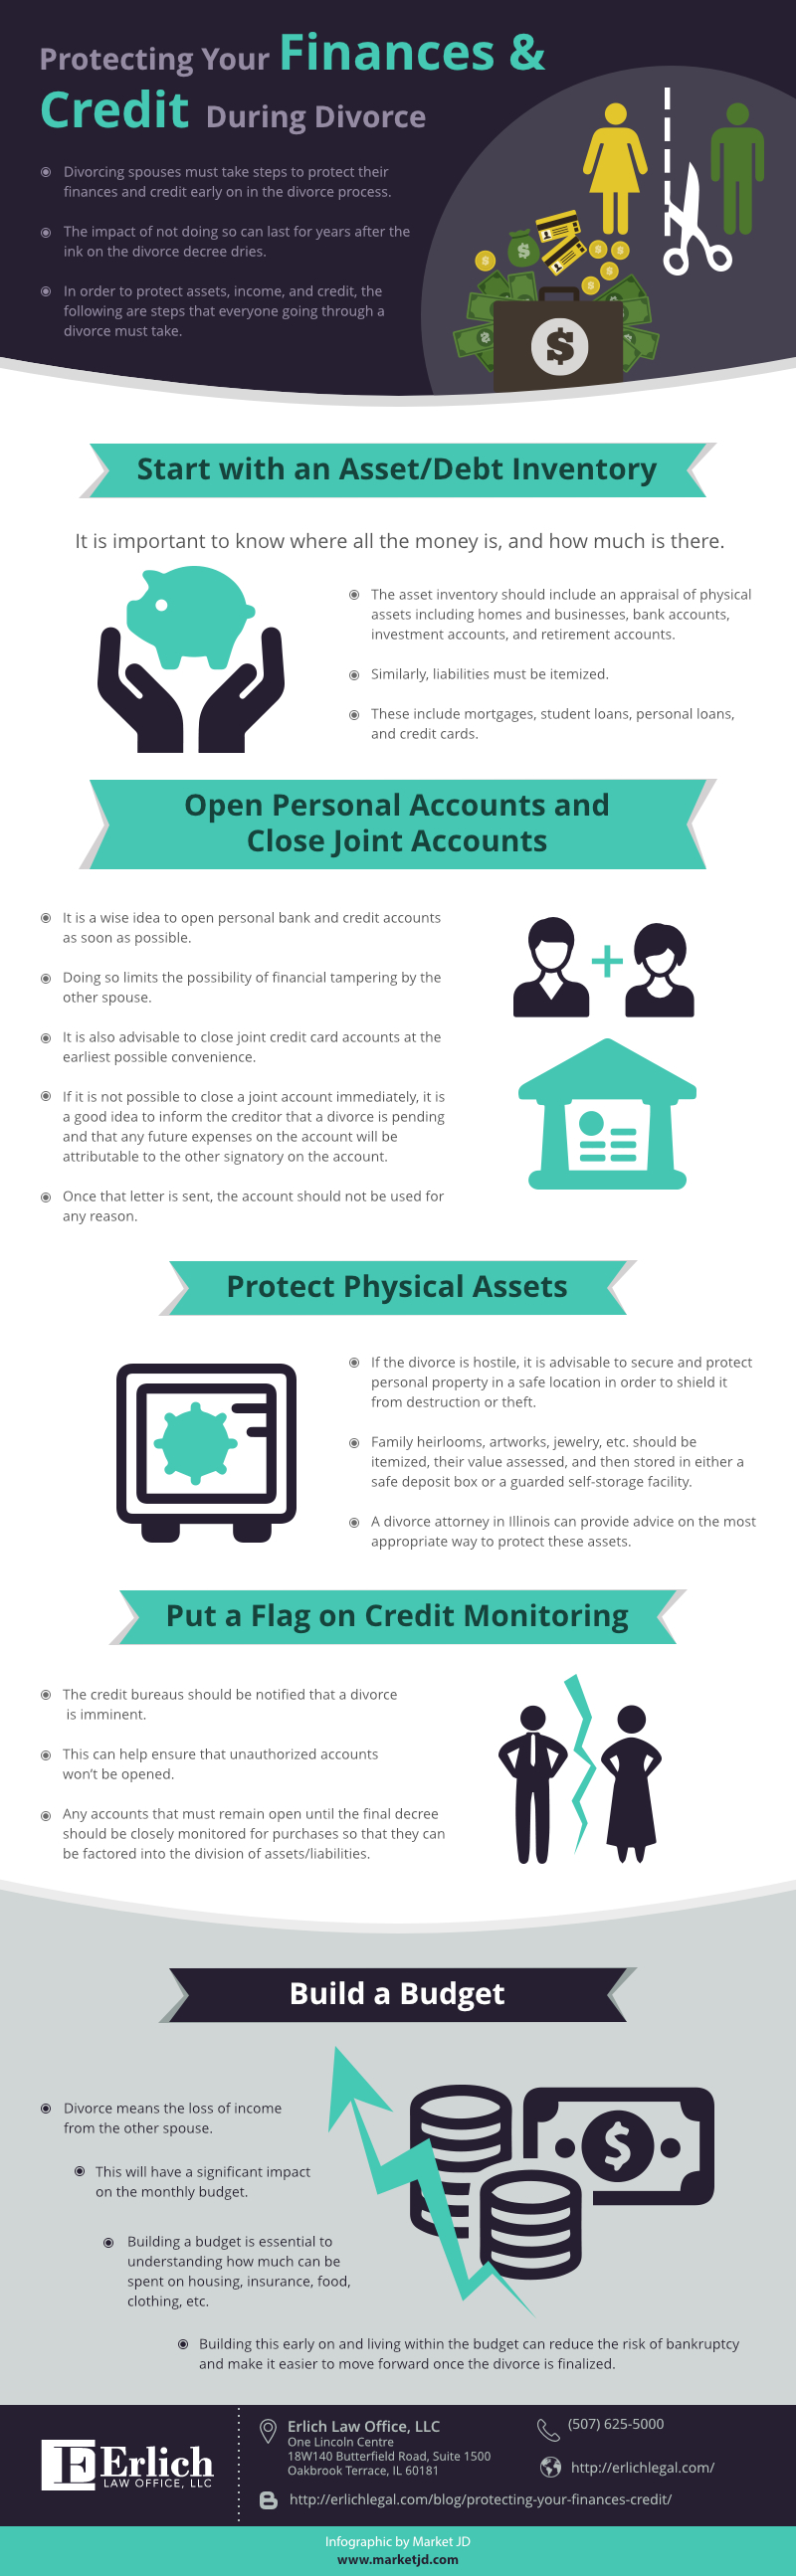 infographic_Protecting your Finances and Credit during Divorce